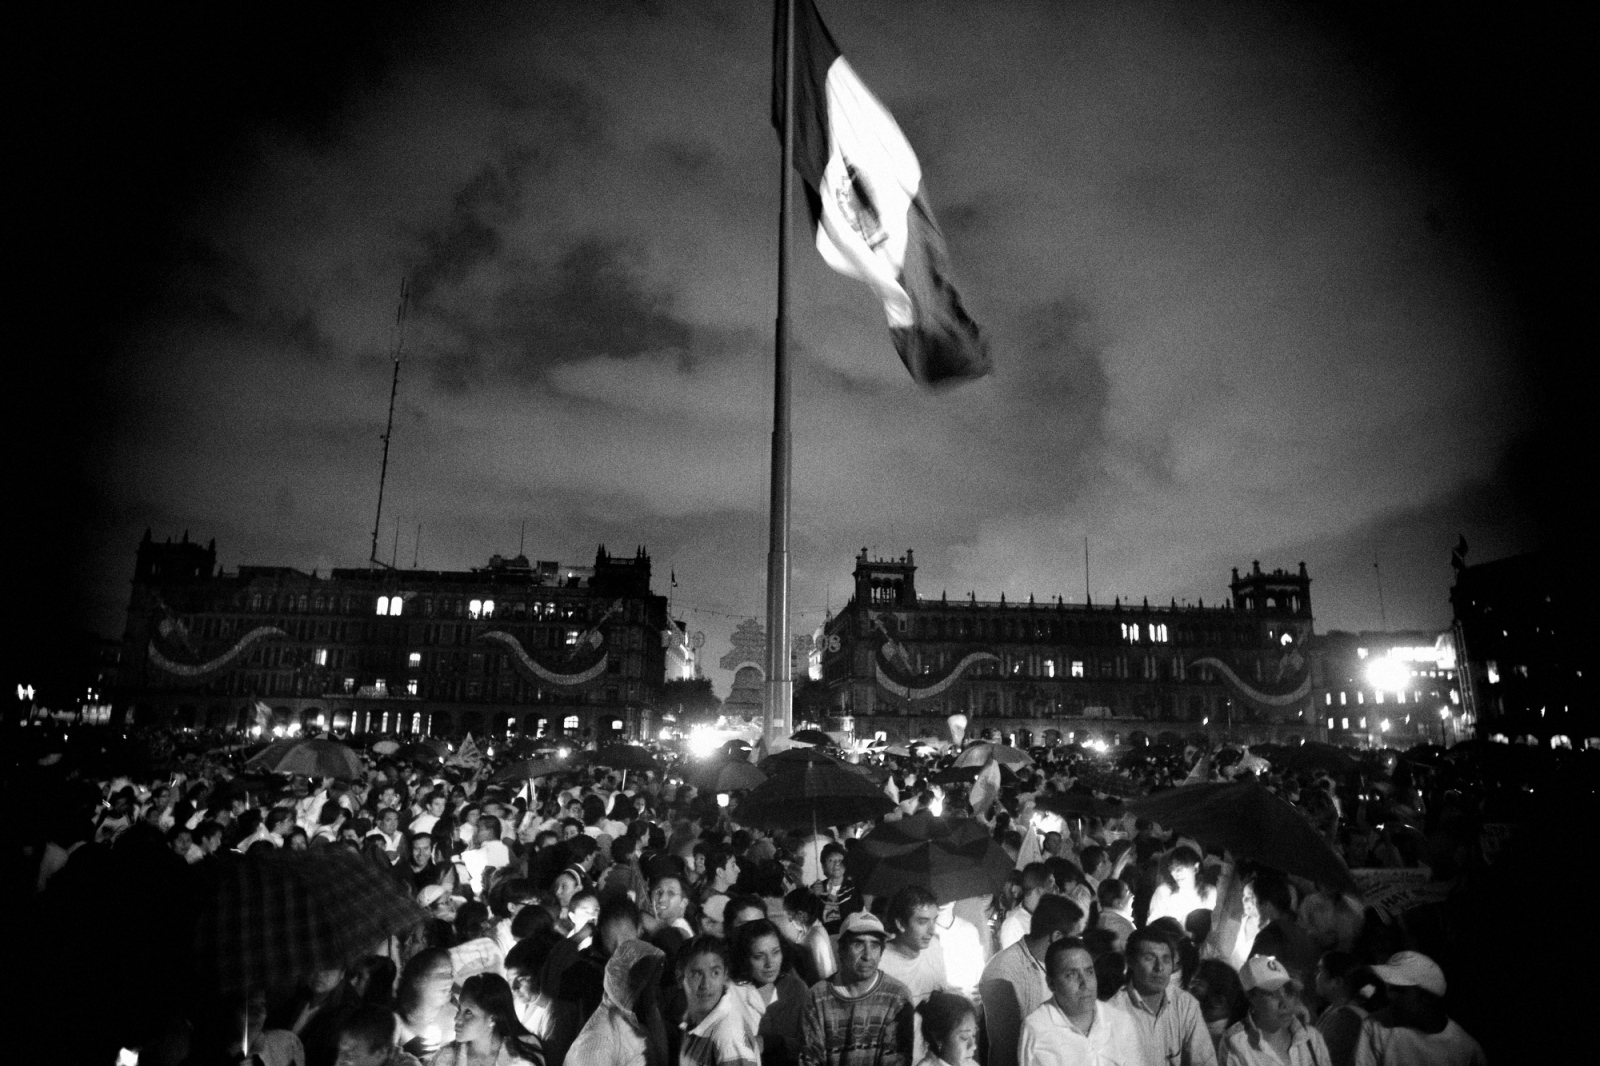 On August 30, 2008, thousands of Mexicans took to the streets across the country in more than 60 cities in protest of the prevailing insecurity that has become rampant across the country. Thousands marched carrying candles to the Zocalo in Mexico City.